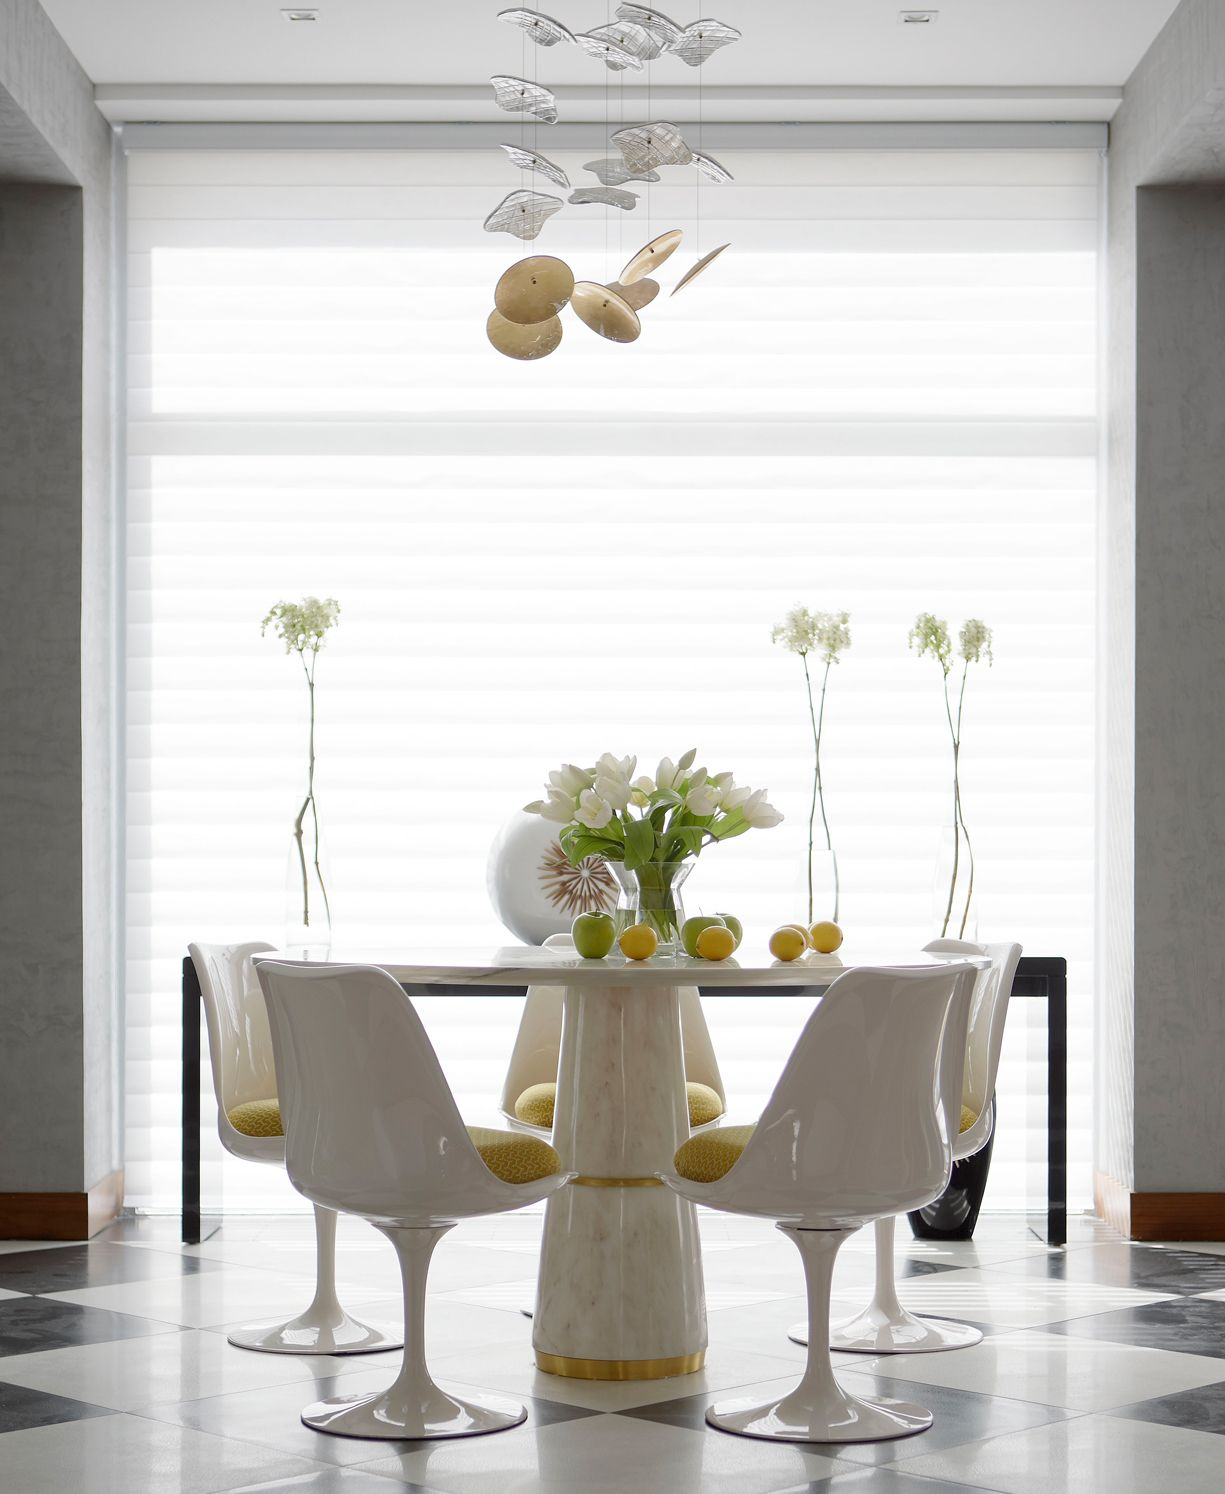 AGRA Marble Dining Table Contemporary Design by BRABBU gives a ...